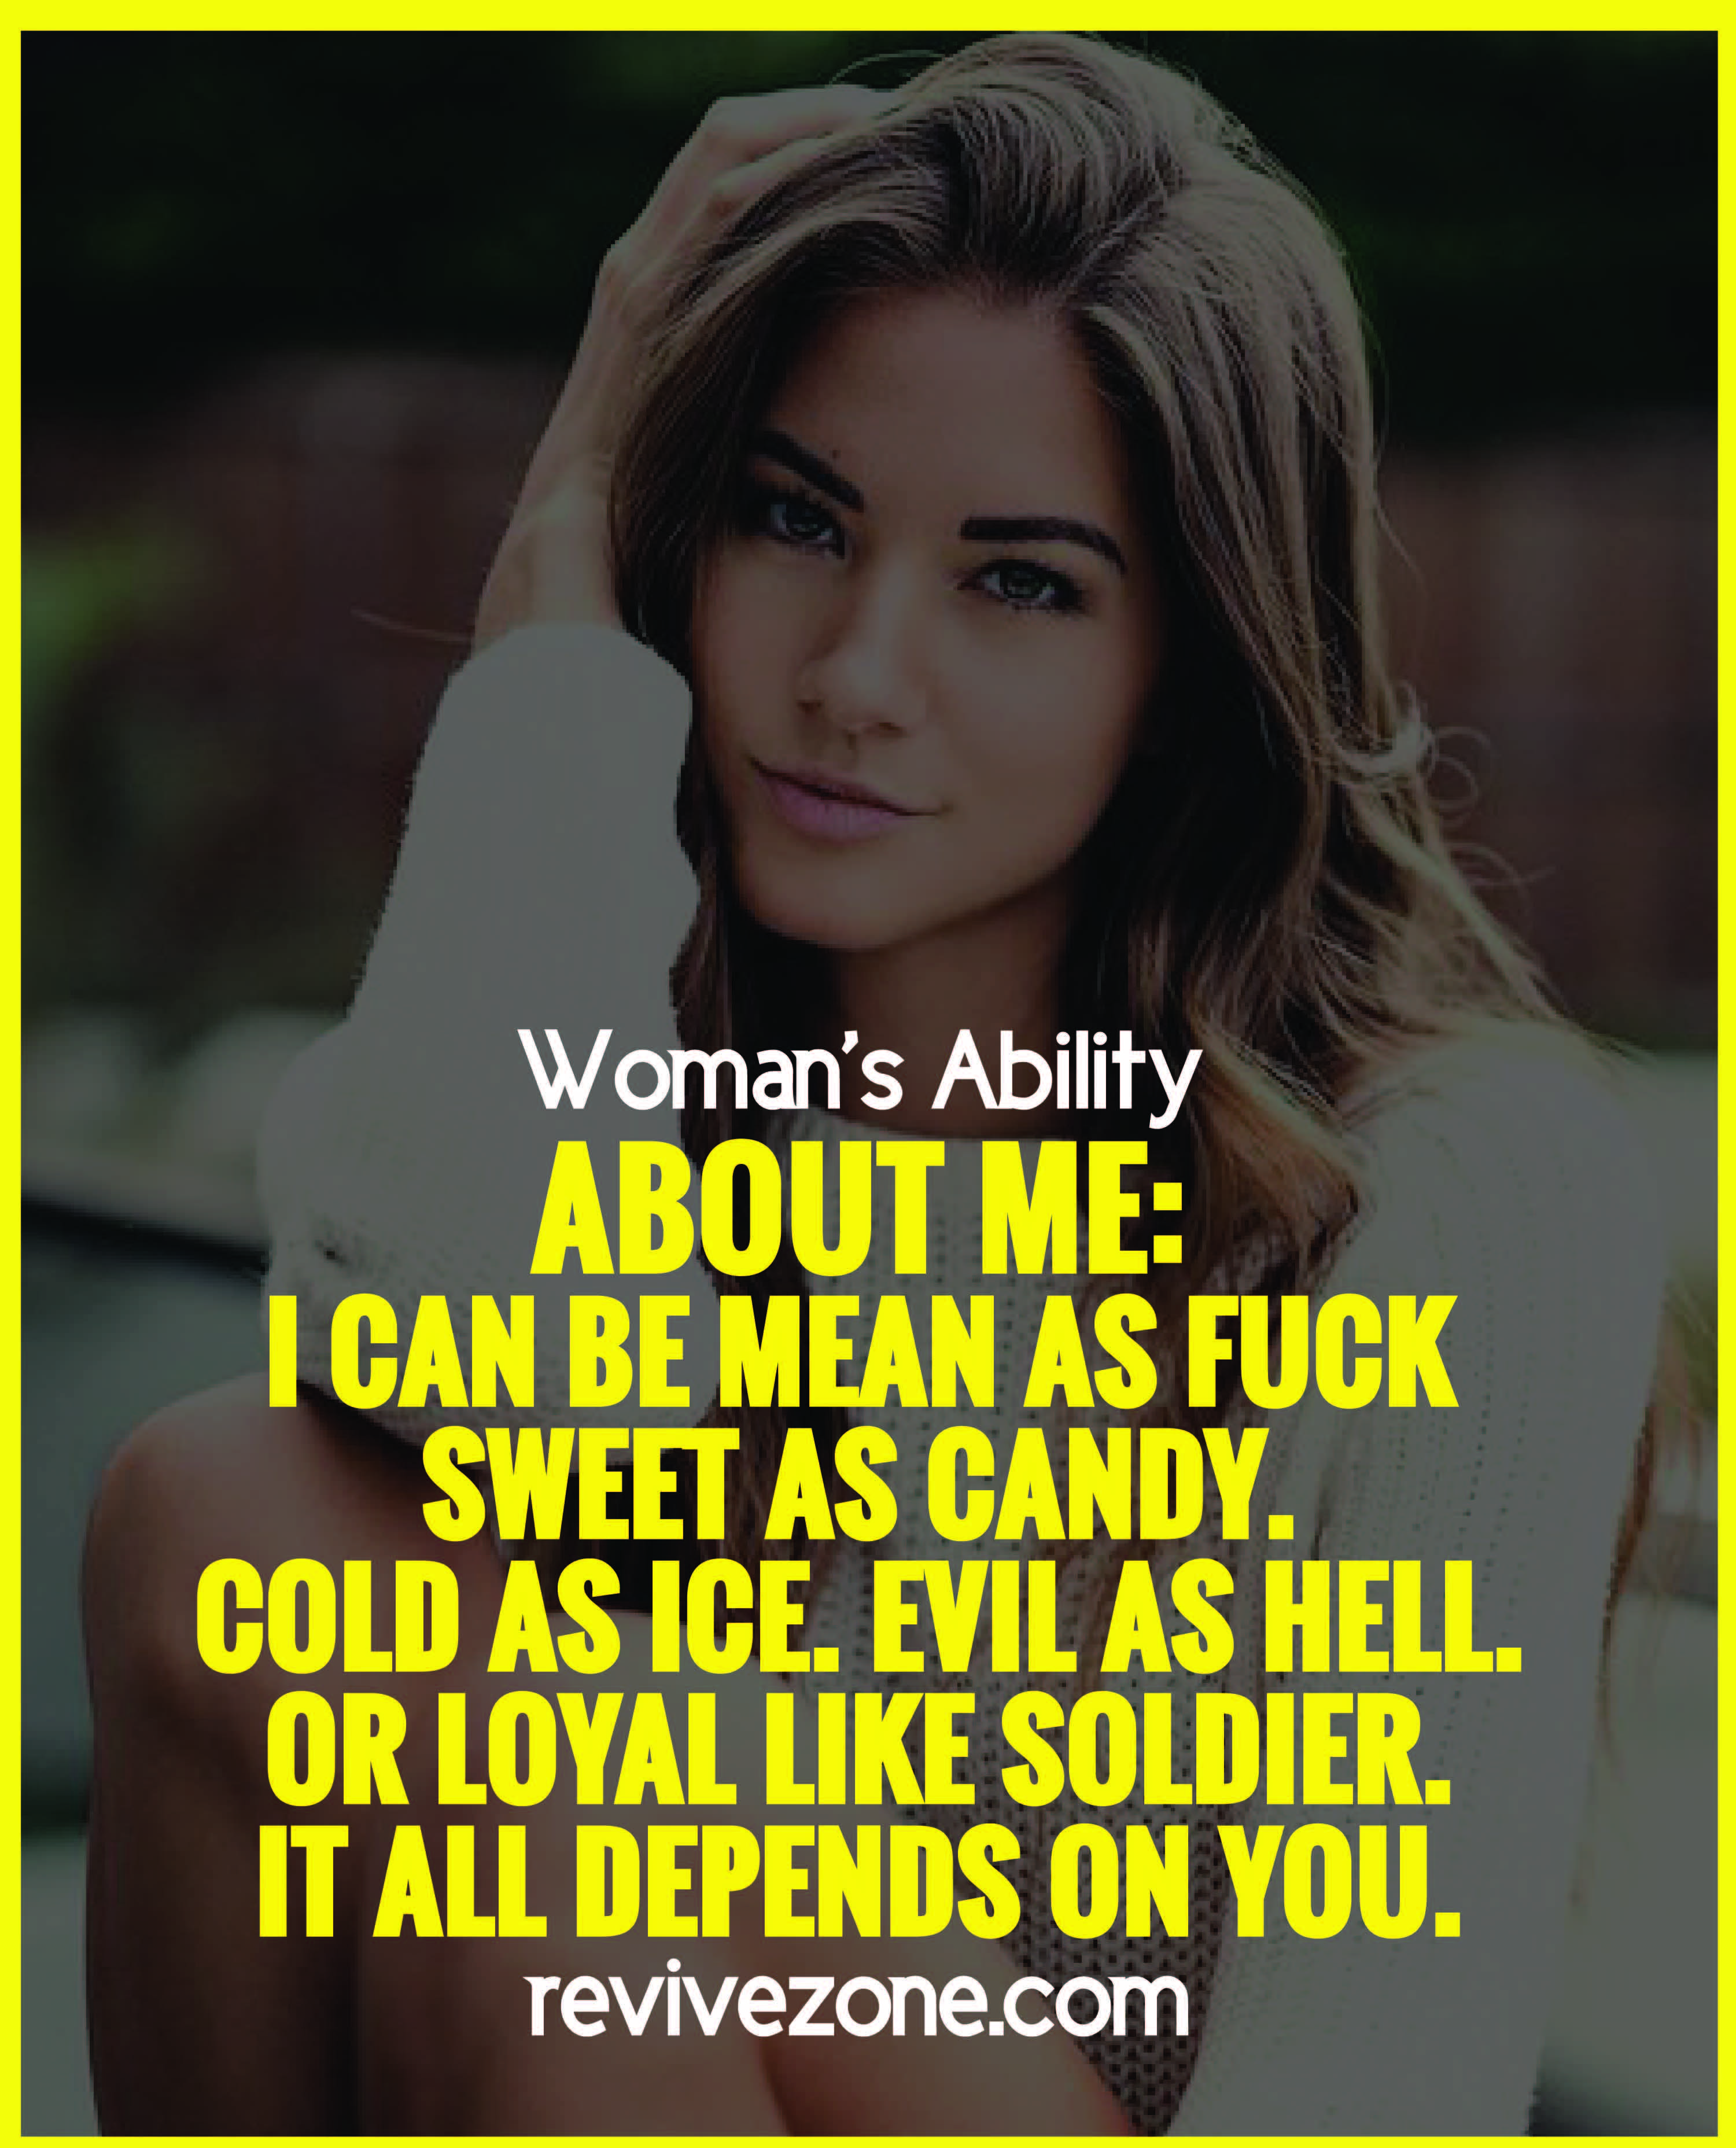 Quotes On Female Strength: About Me, Quote, Motivational, Inspirational, Confidence